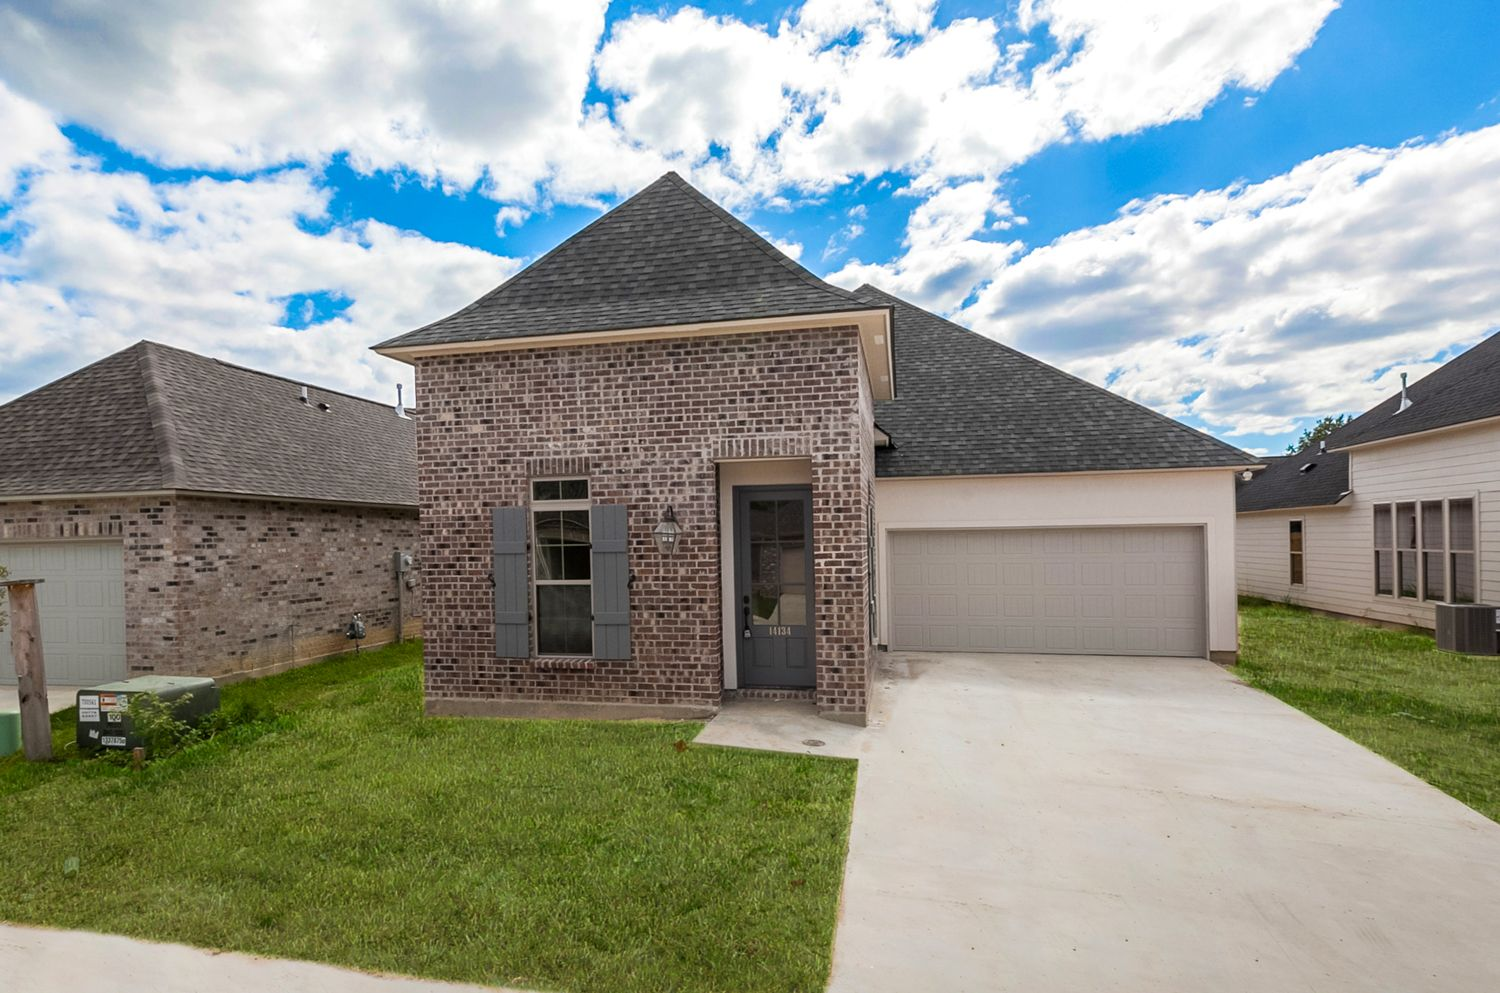 14134 Coursey Cove Ave CC LOT 34 Courtyard design, Home